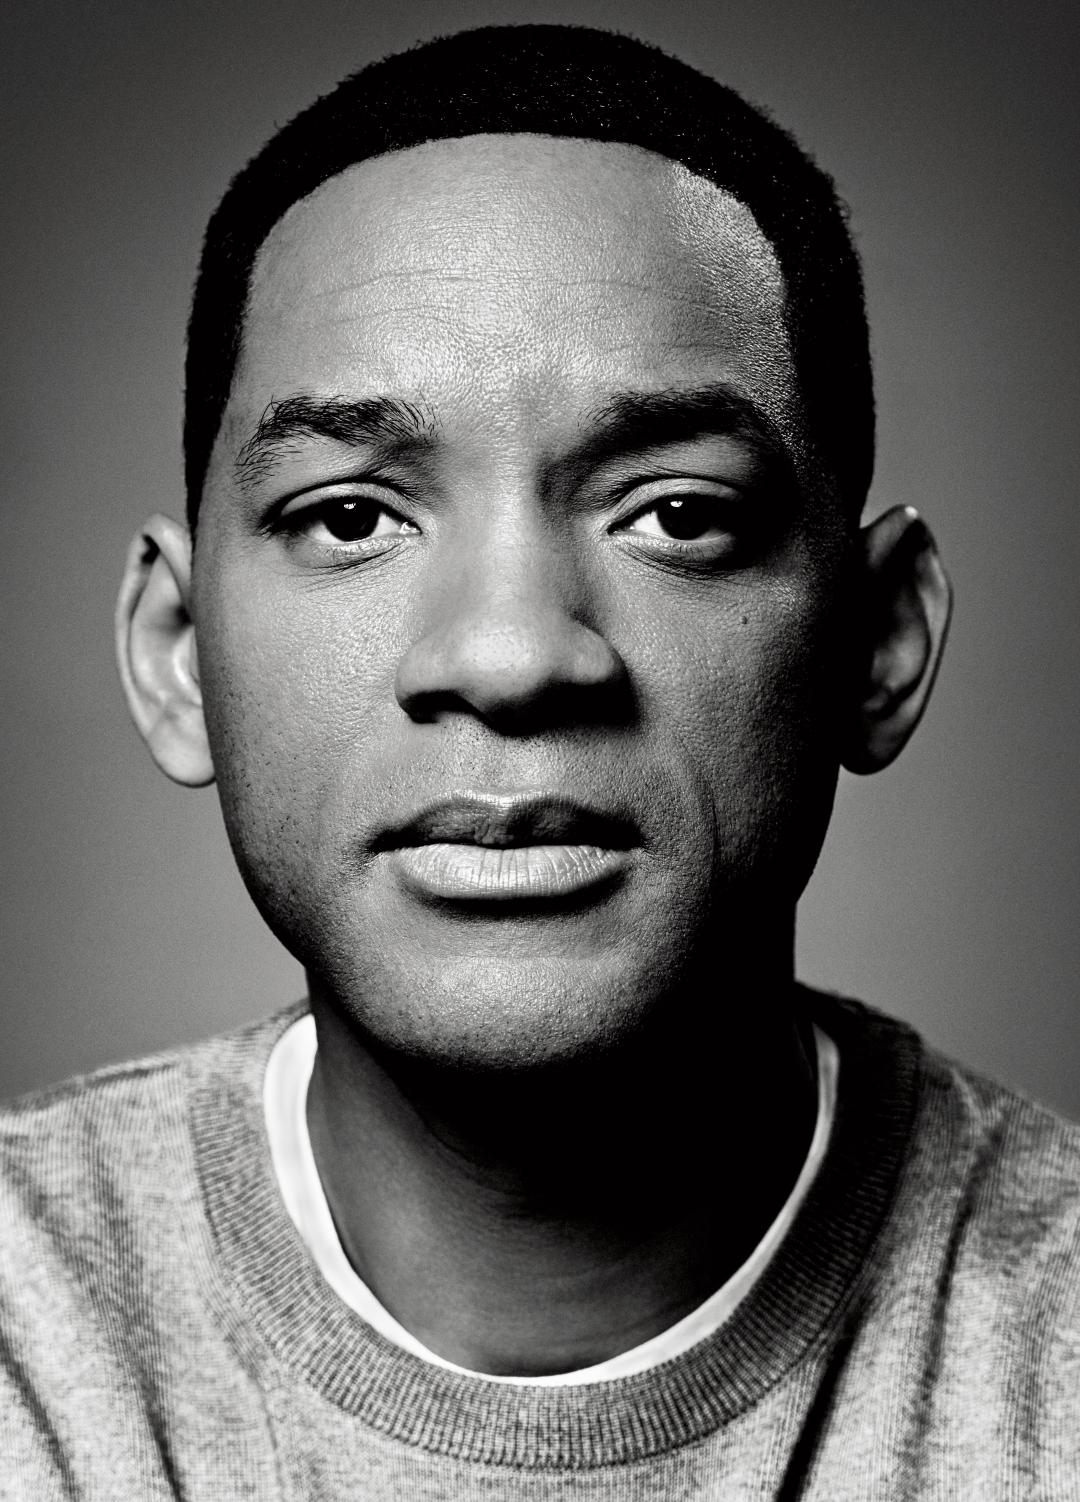 Will Smith told why he refused the role in the Western Django freed 11/24/2015 16